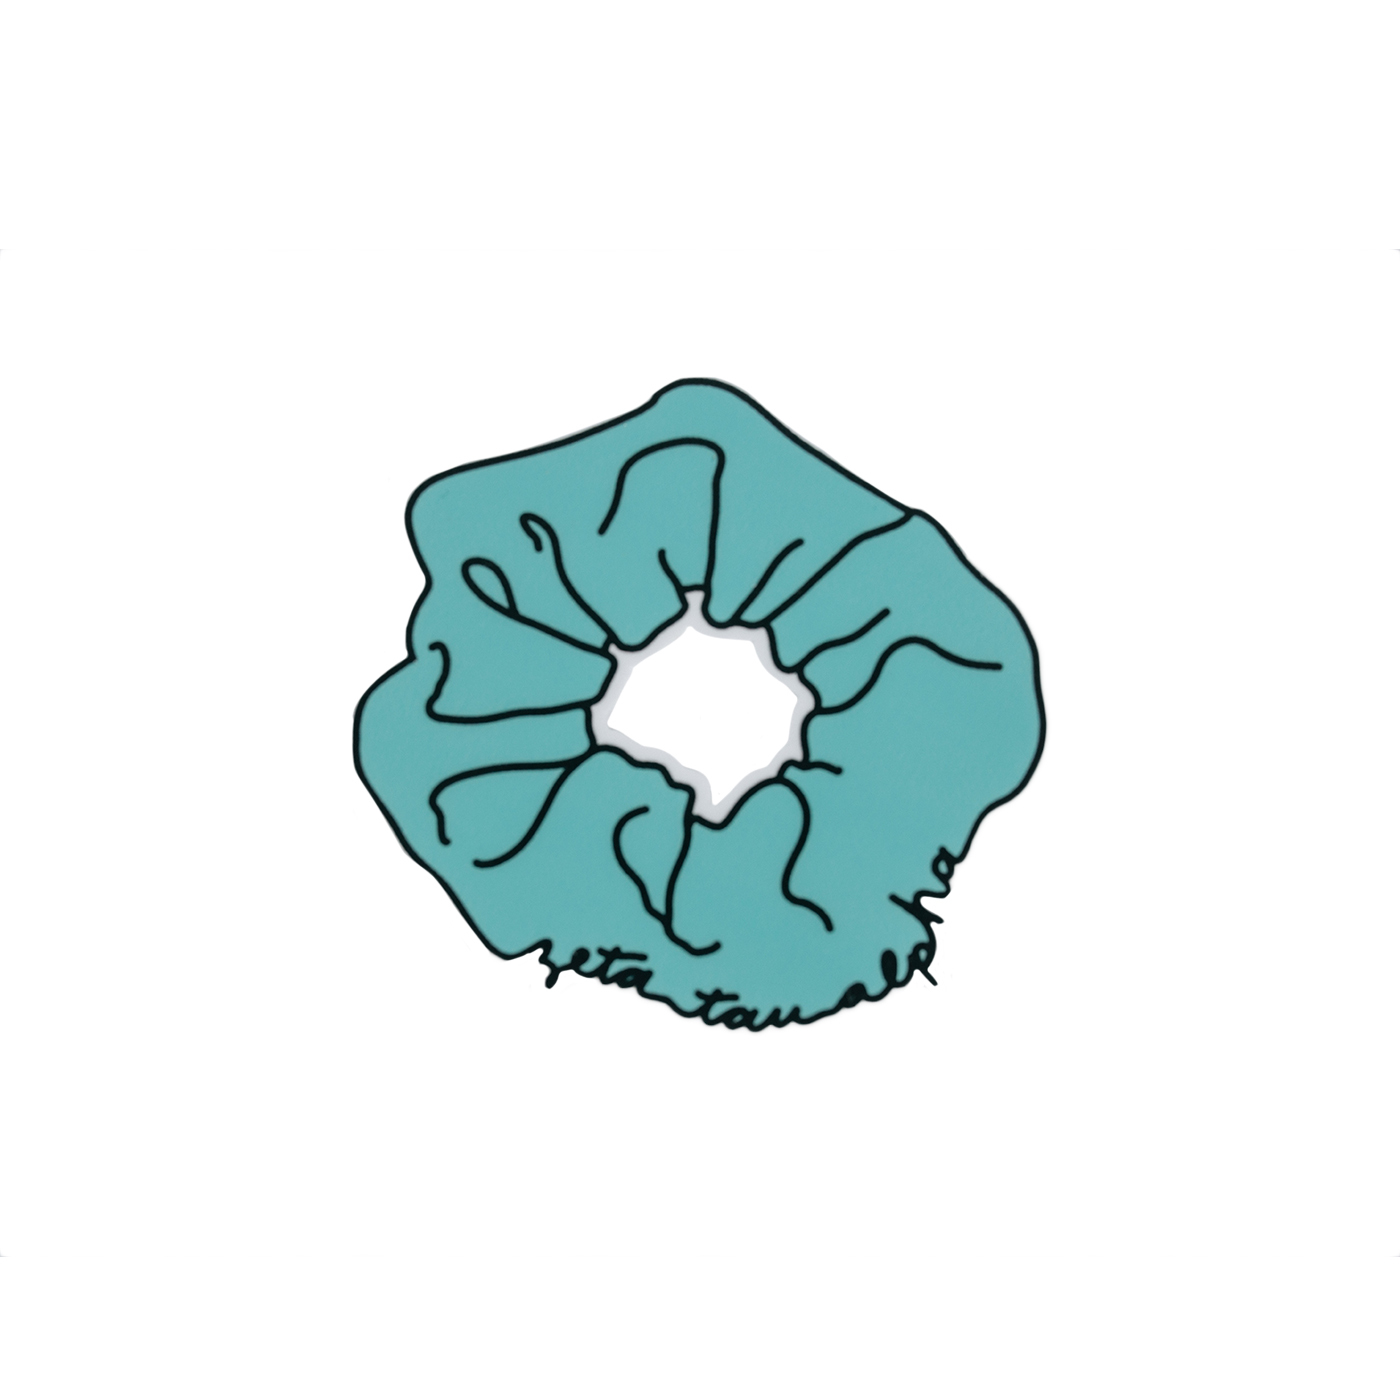 Zeta Tau Alpha Scrunchie Die Cut Sticker